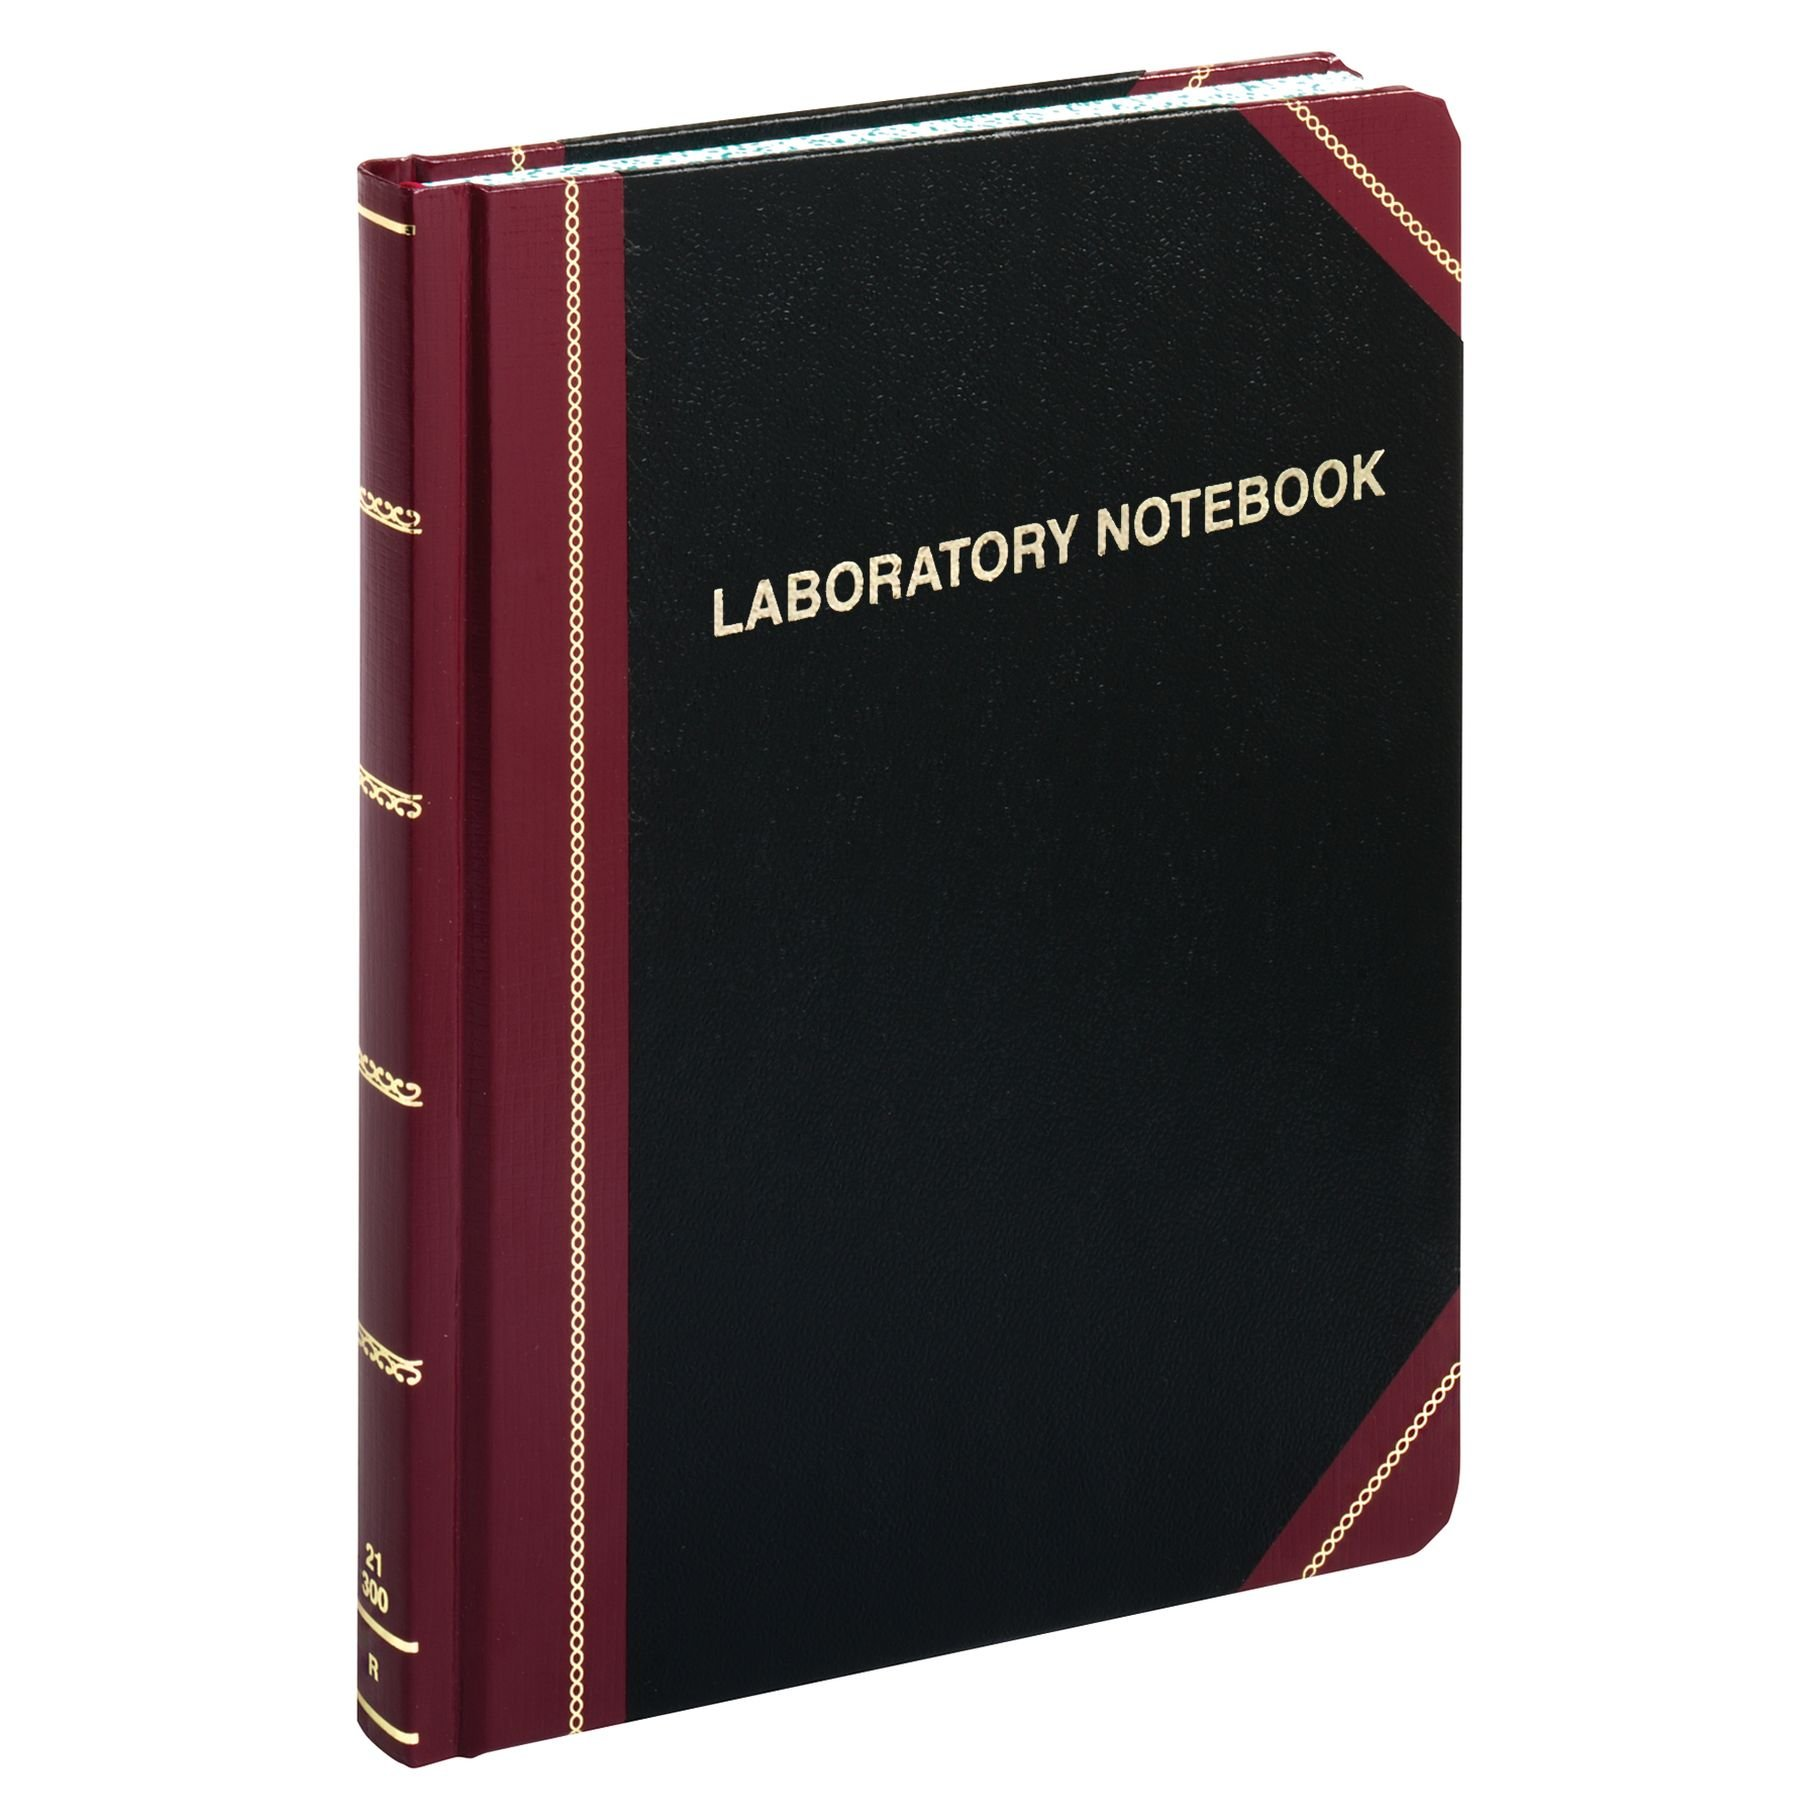 Boorum & Pease Special Laboratory Notebook, Record Ruled, Black, 300 Pages, 10-3/8'' x 8-1/8'' (L21-300-R) by Boorum & Pease